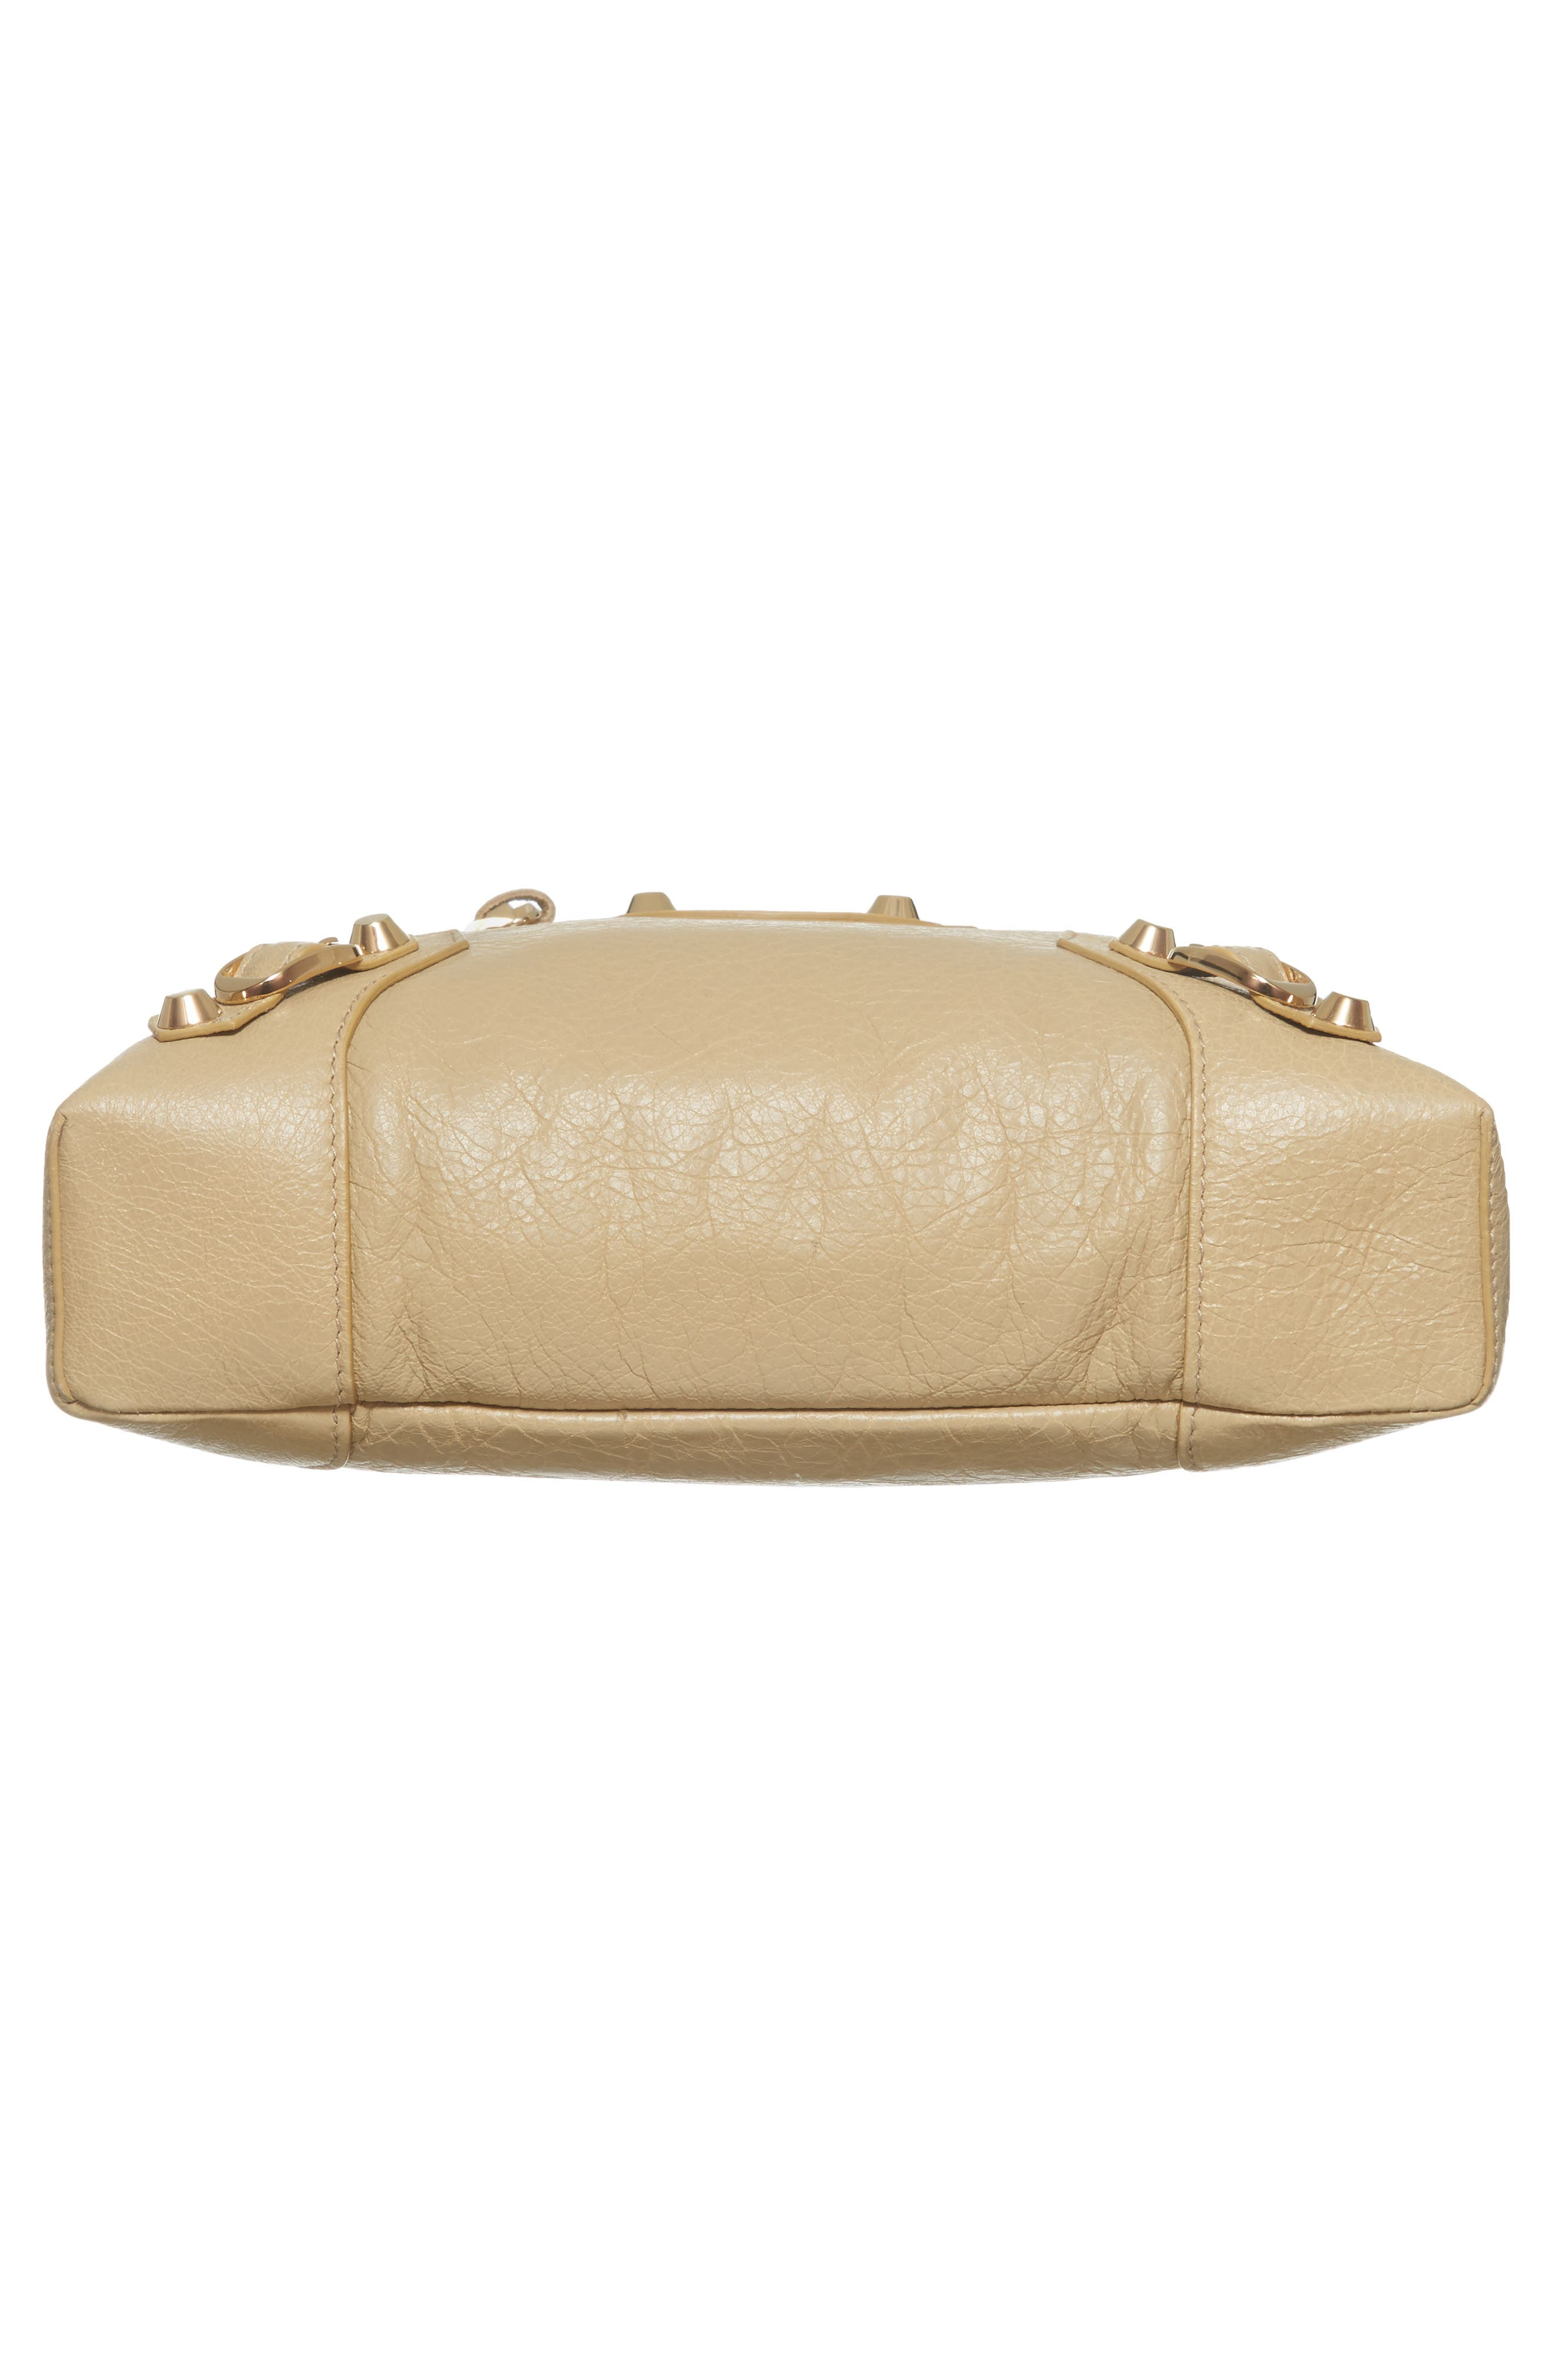 Classic Reporter Leather Camera Bag,                             Alternate thumbnail 6, color,                             2616 Beige Sable